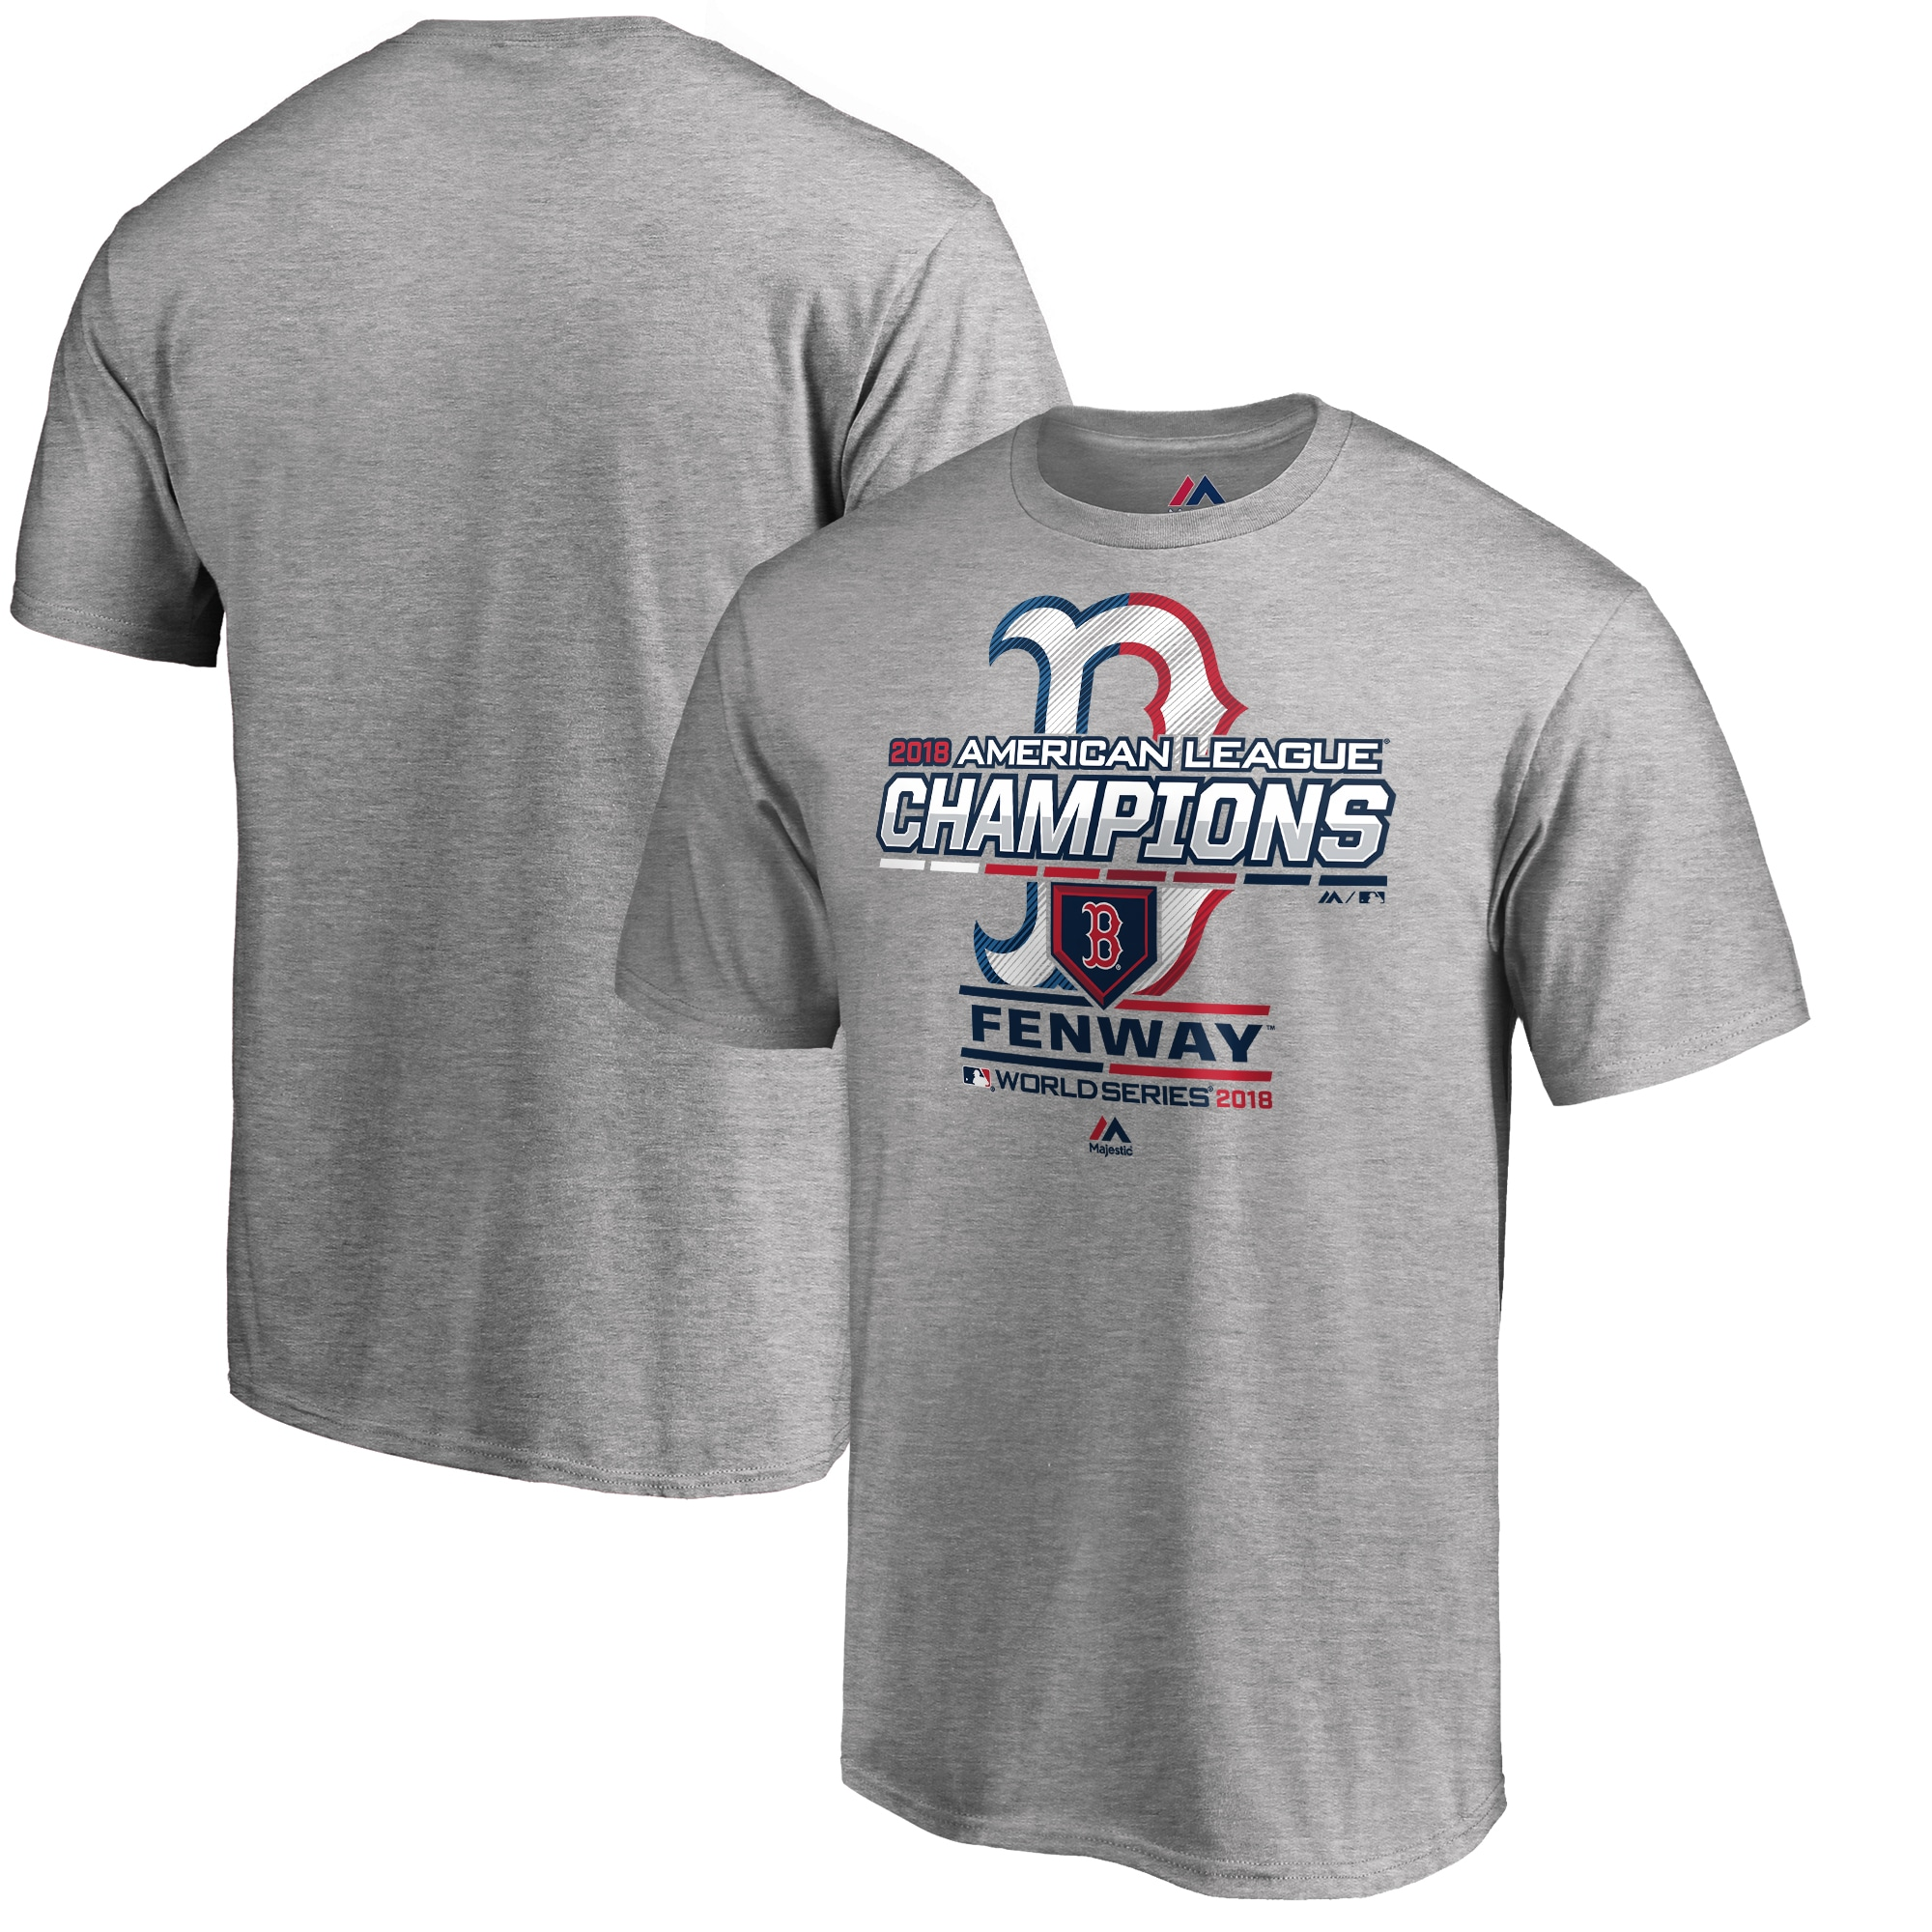 Boston Red Sox Majestic 2018 American League Champions Locker Room T-Shirt - Heather Gray